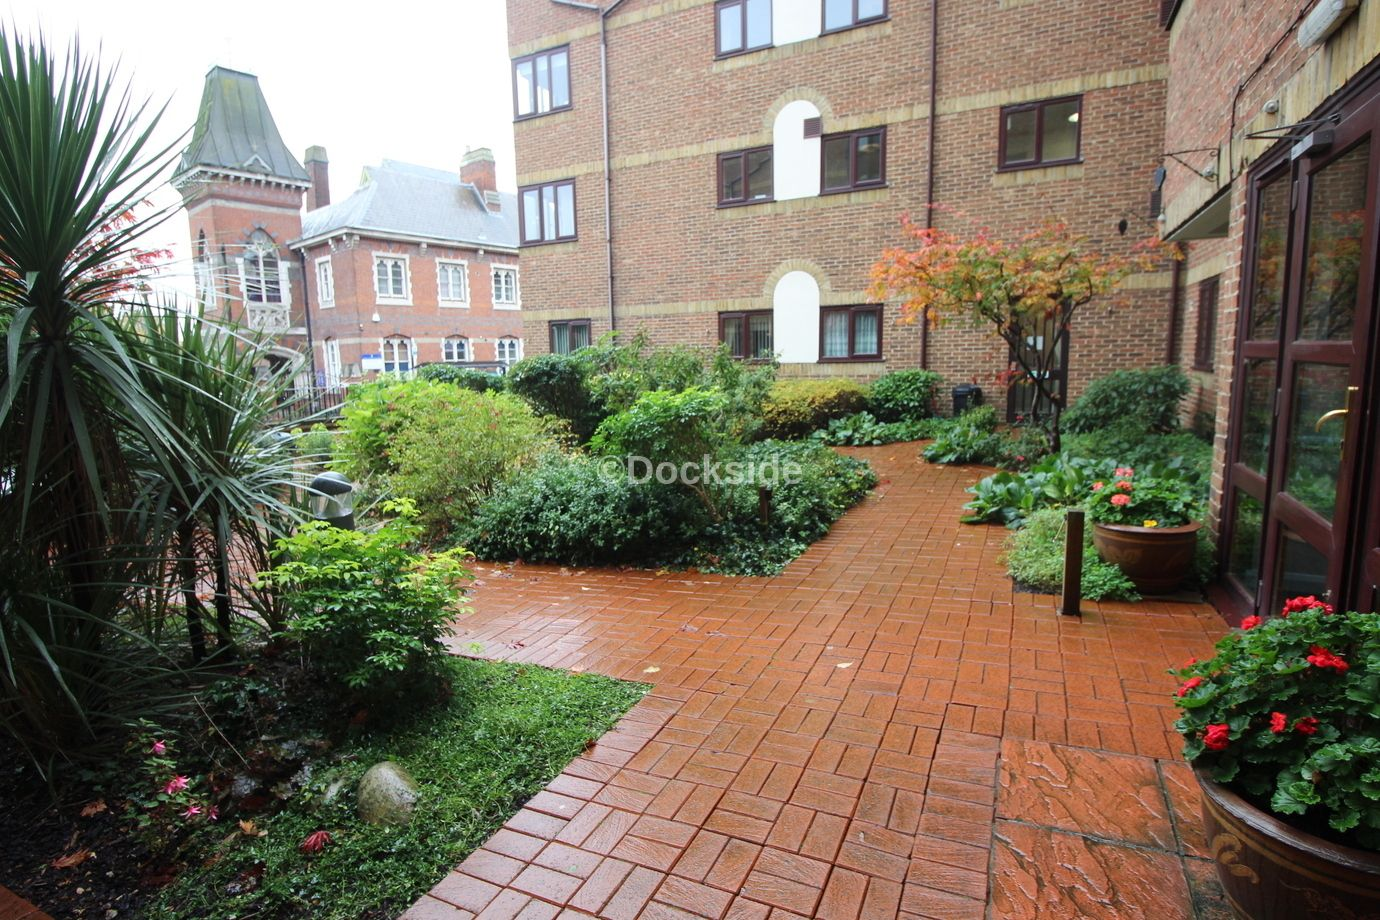 1 bed flat for sale in High Street, ME1